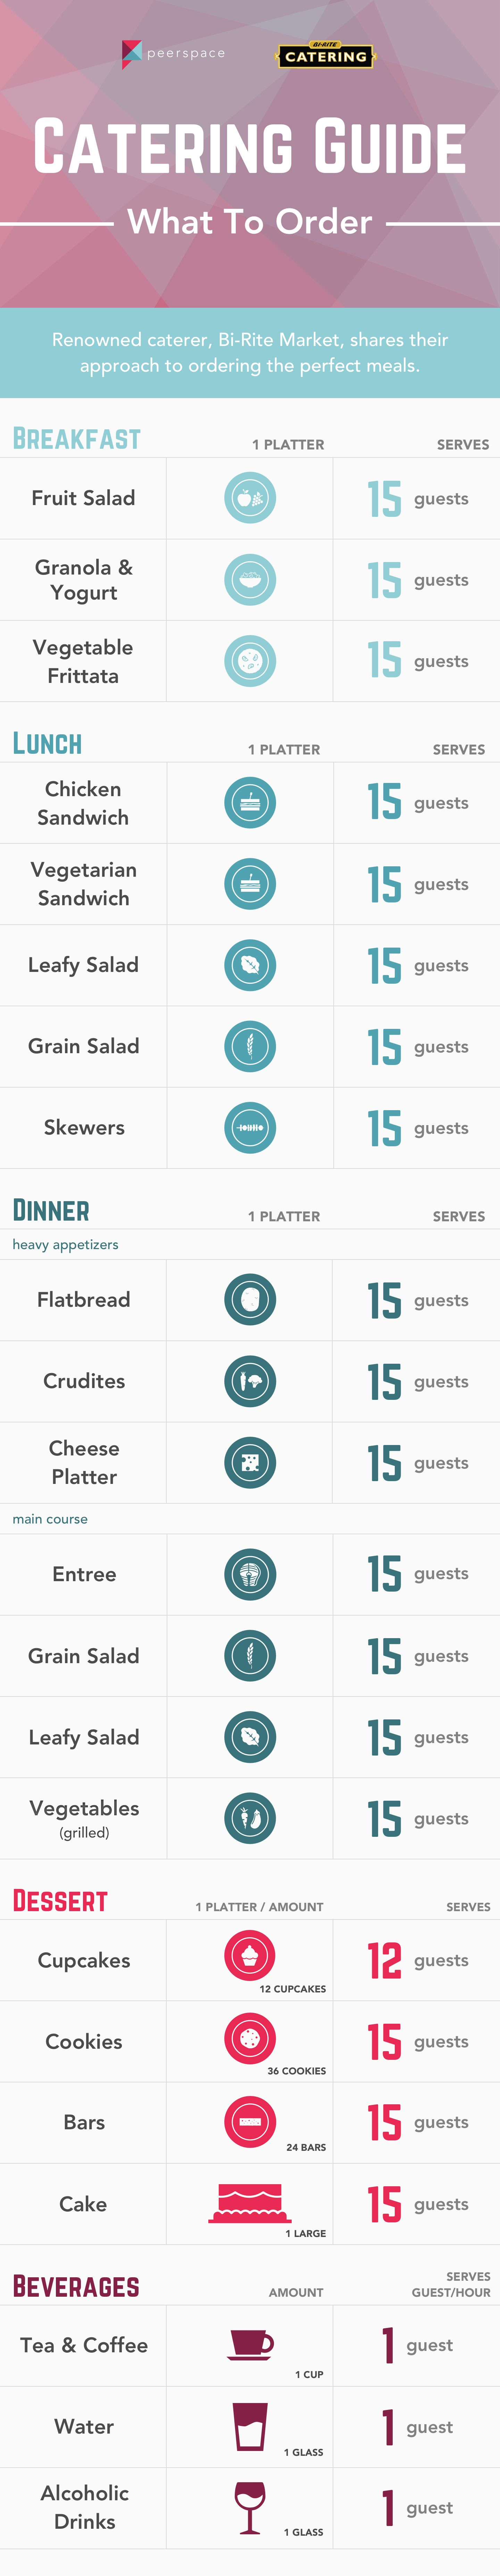 Catering Menu Template: What to Order | Pinterest | Catering menu ...